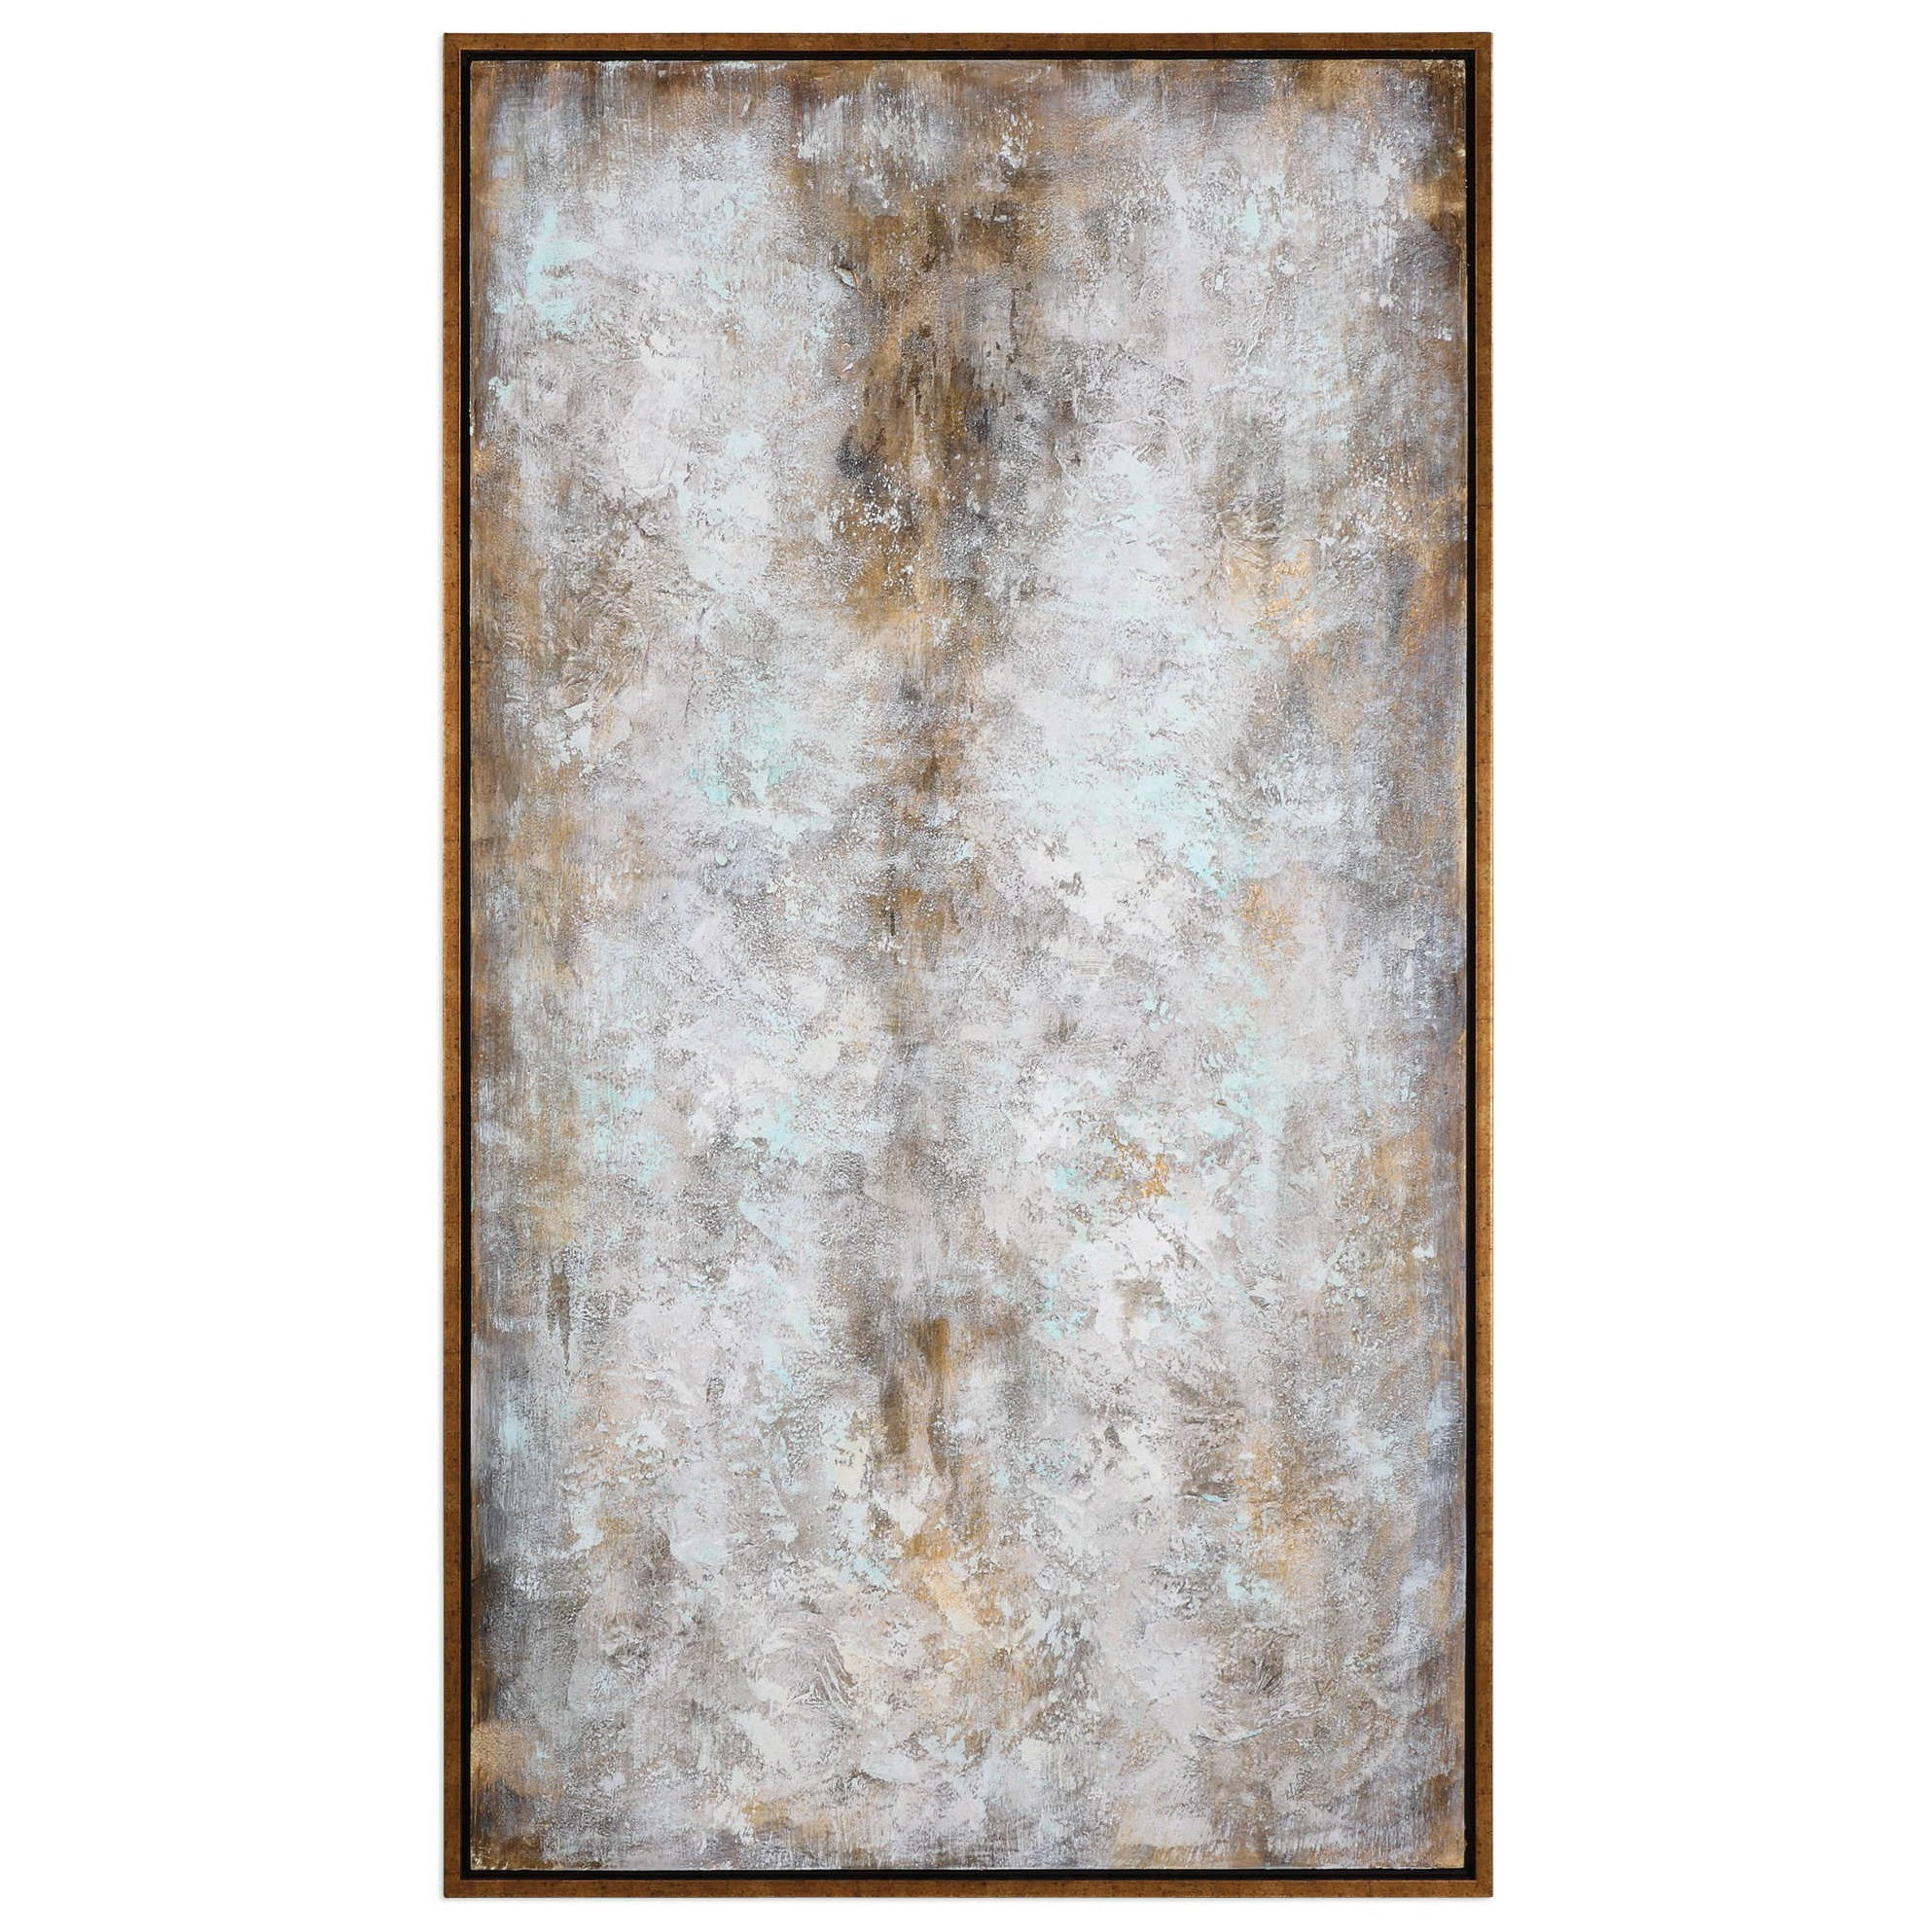 uttermost wall decor alternative wall uttermost artblizzard abstract art blizzard howell furniture wall decor